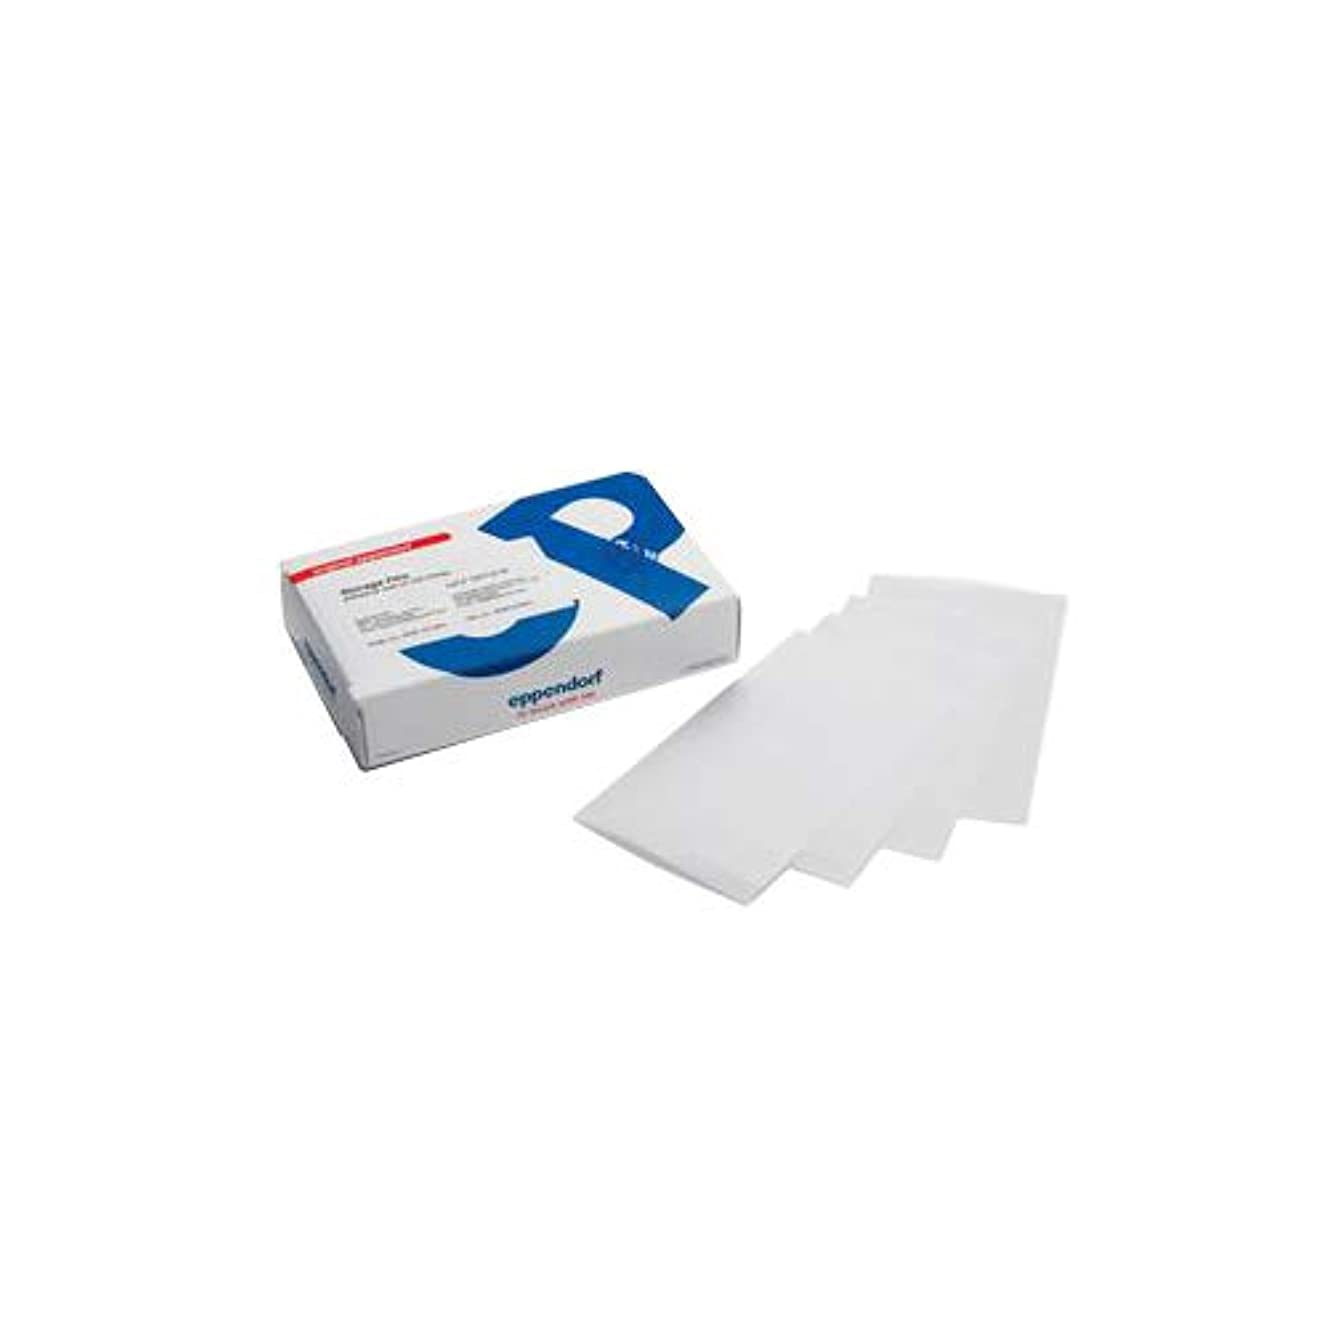 Eppendorf 0030 131.517 PCR Clean Plate Lid (Pack of 80)